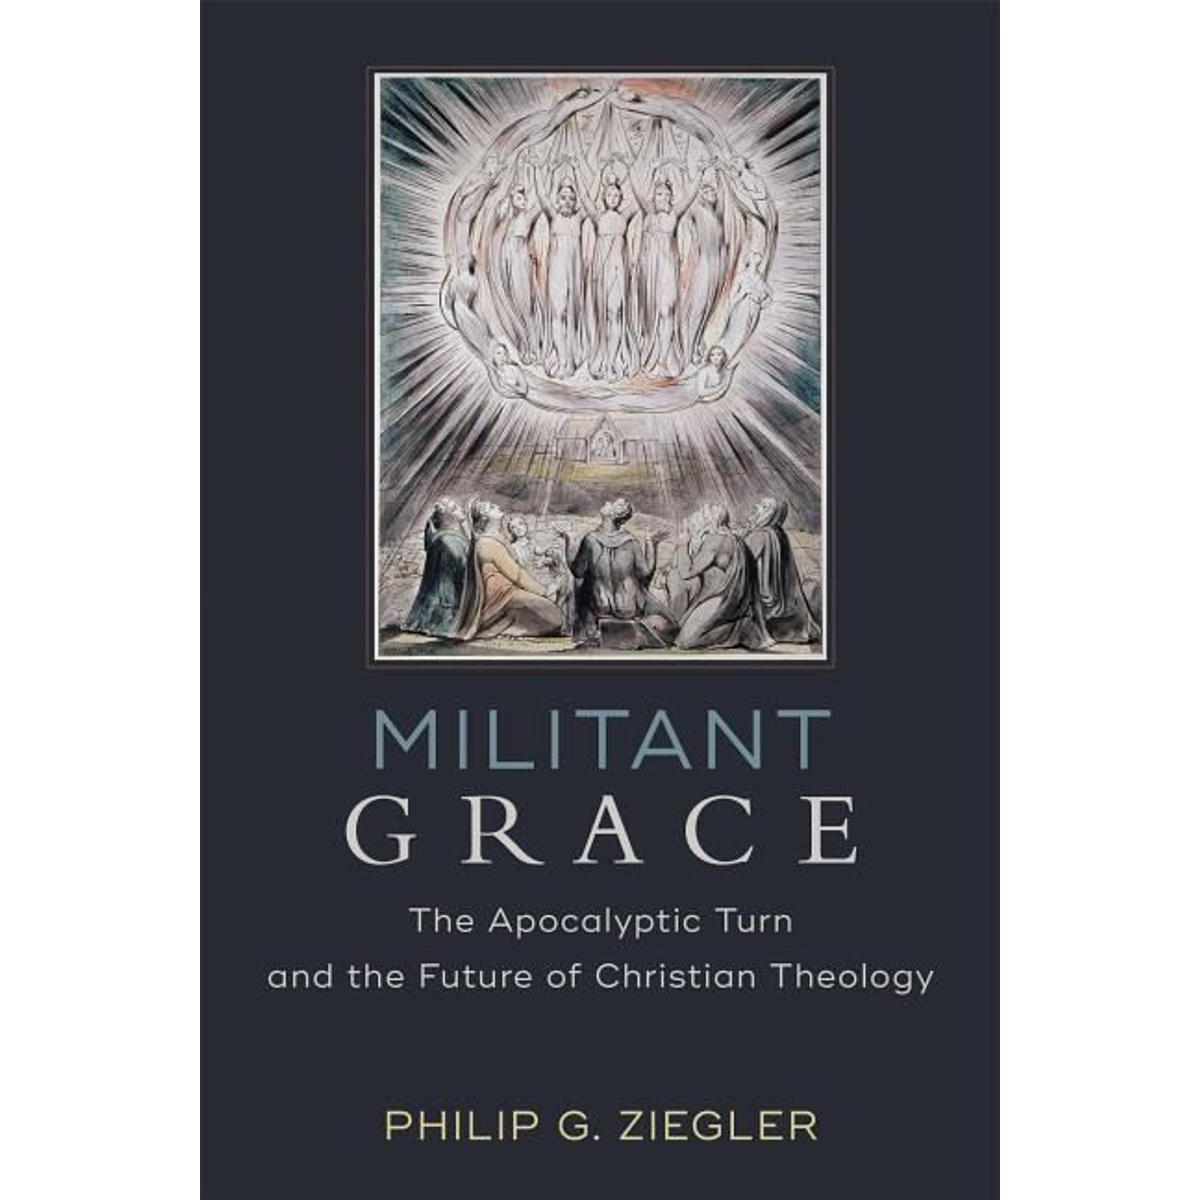 ISBN Militant Grace (The Apocalyptic Turn and the Future of Christian Theology) book English Paperback 256 pages